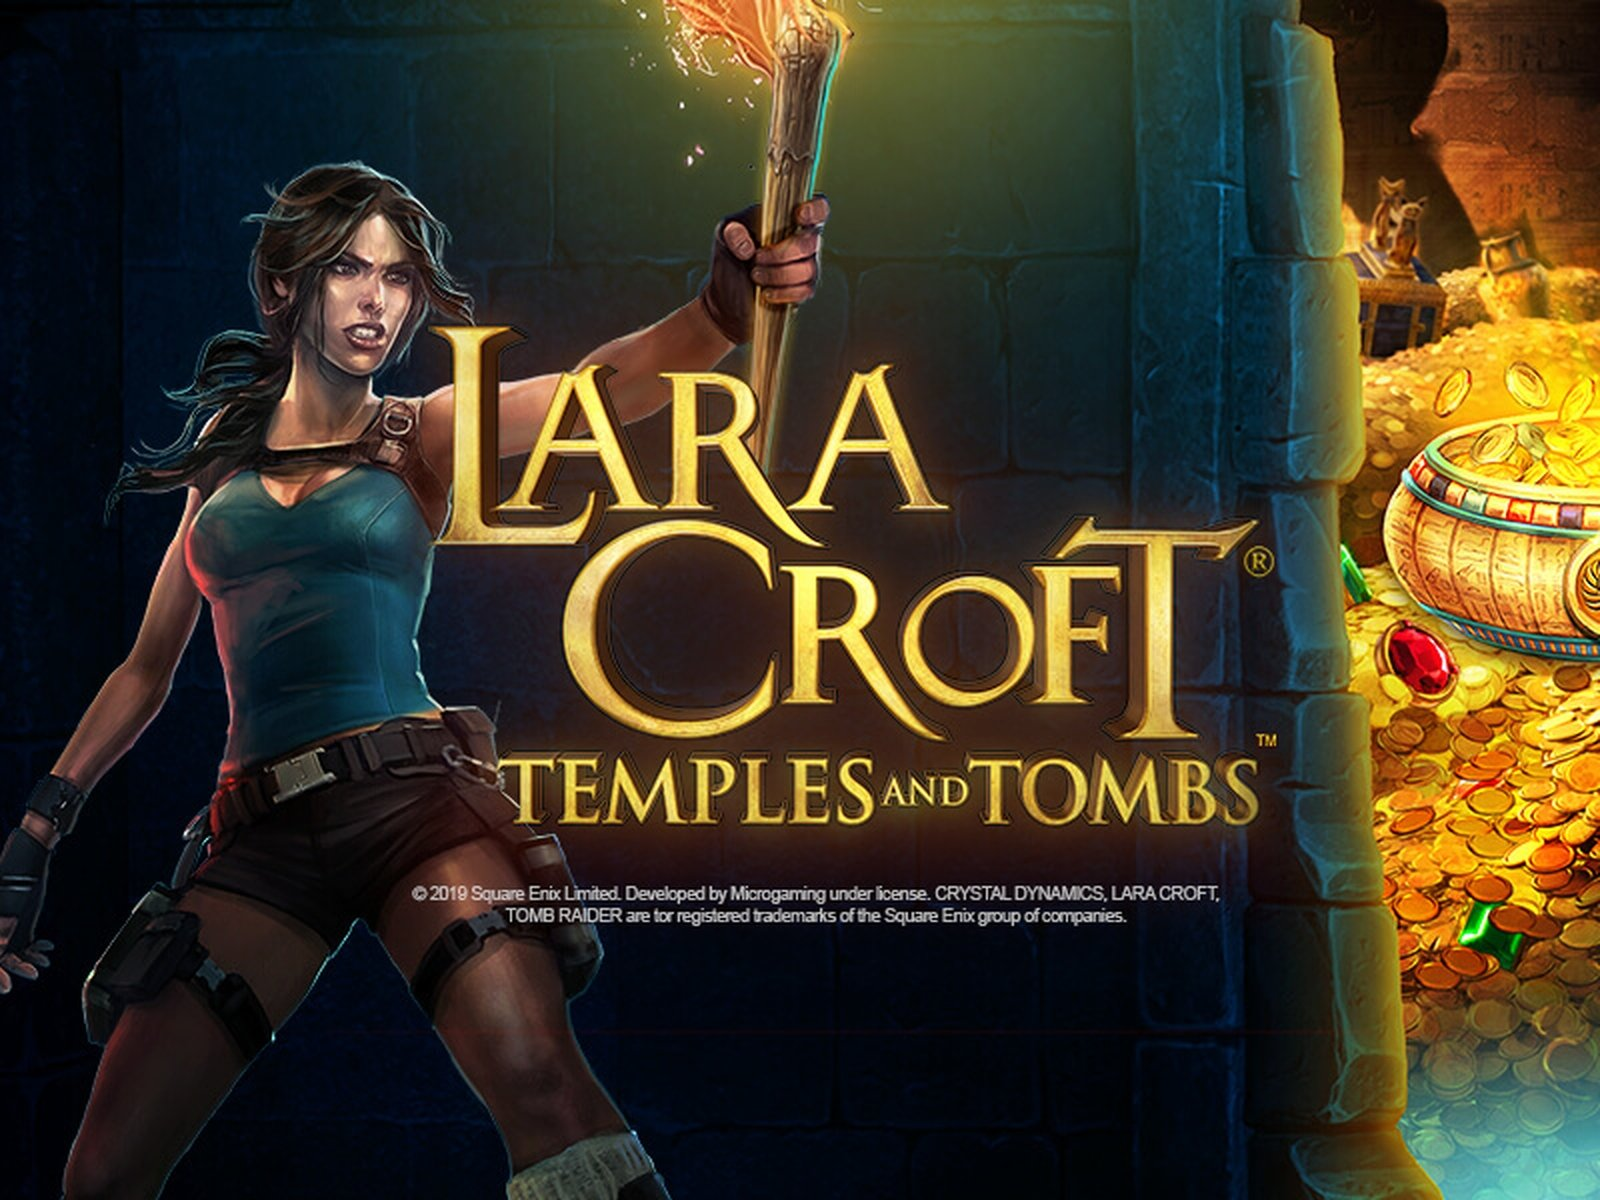 Lara Croft Temples and Tombs Online Slot Demo Game by Triple Edge Studios